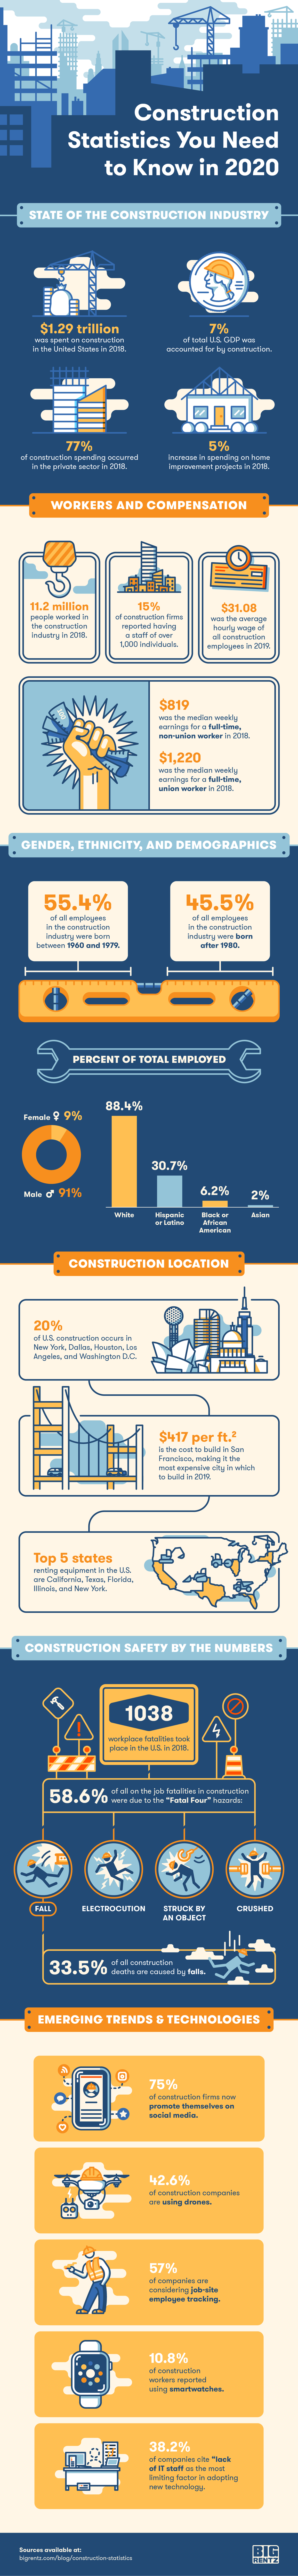 60 must know construction statistics 2020